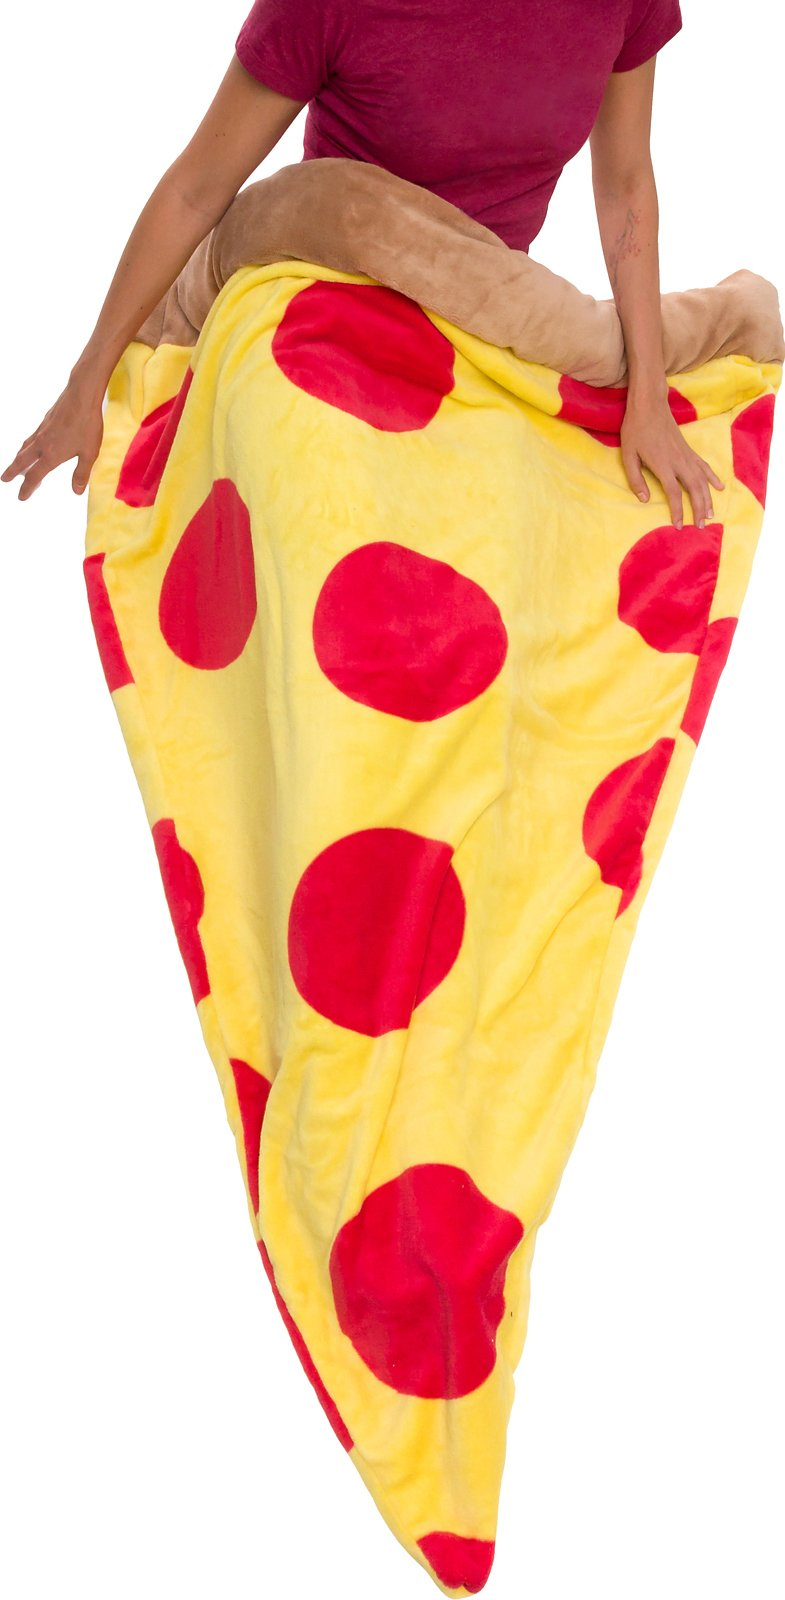 Silver Lilly Pizza Sleeping Bag - Plush Fleece Giant Pizza Slice Blanket for Kids and Adults by (Adult)